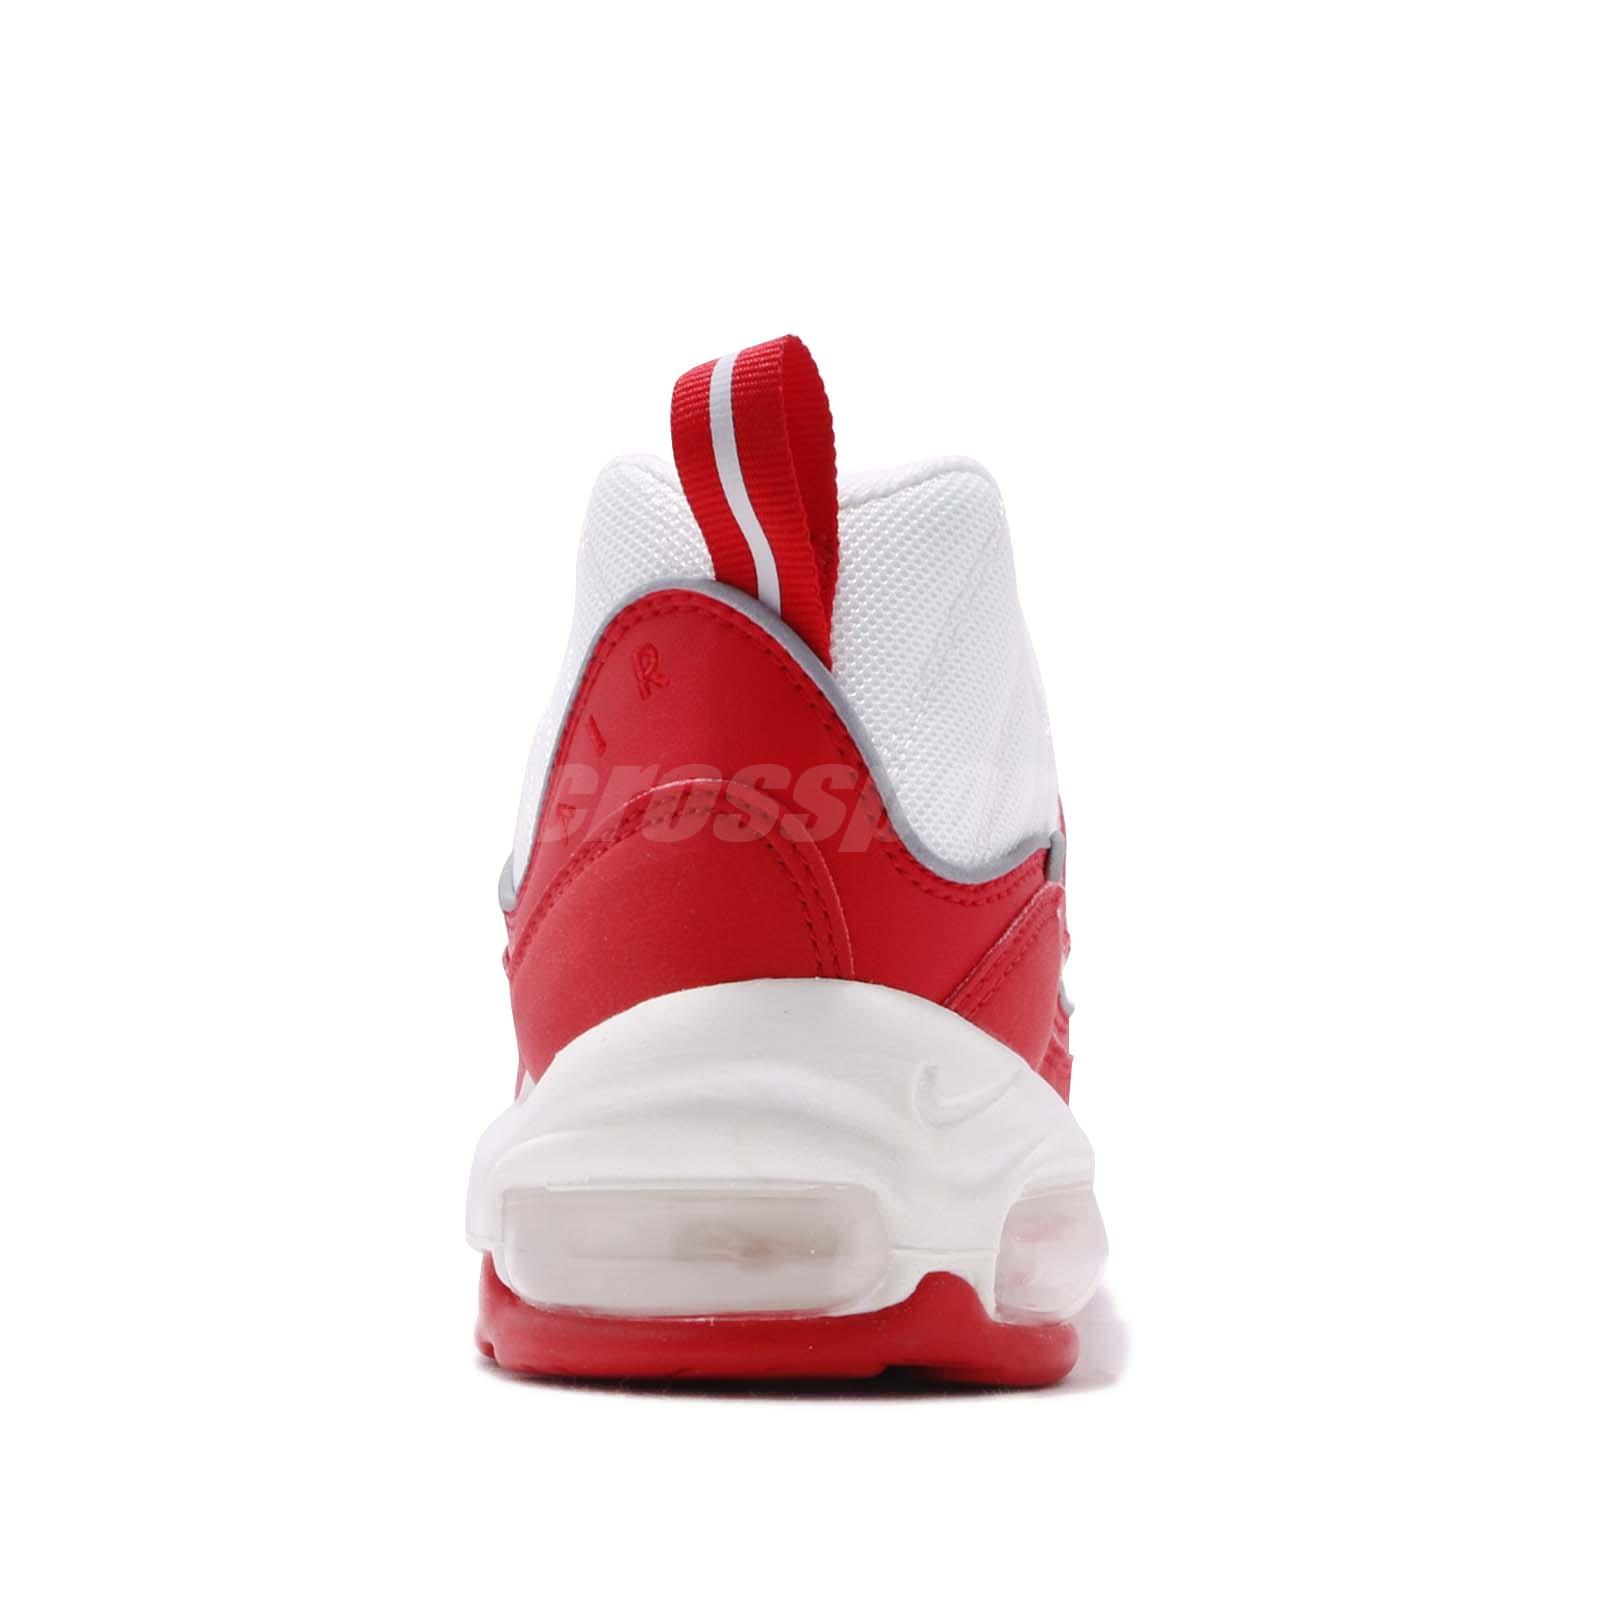 official photos 20d33 4bc34 Nike Air Max 98 University Red White Mens Running Shoes NSW Sneakers ...